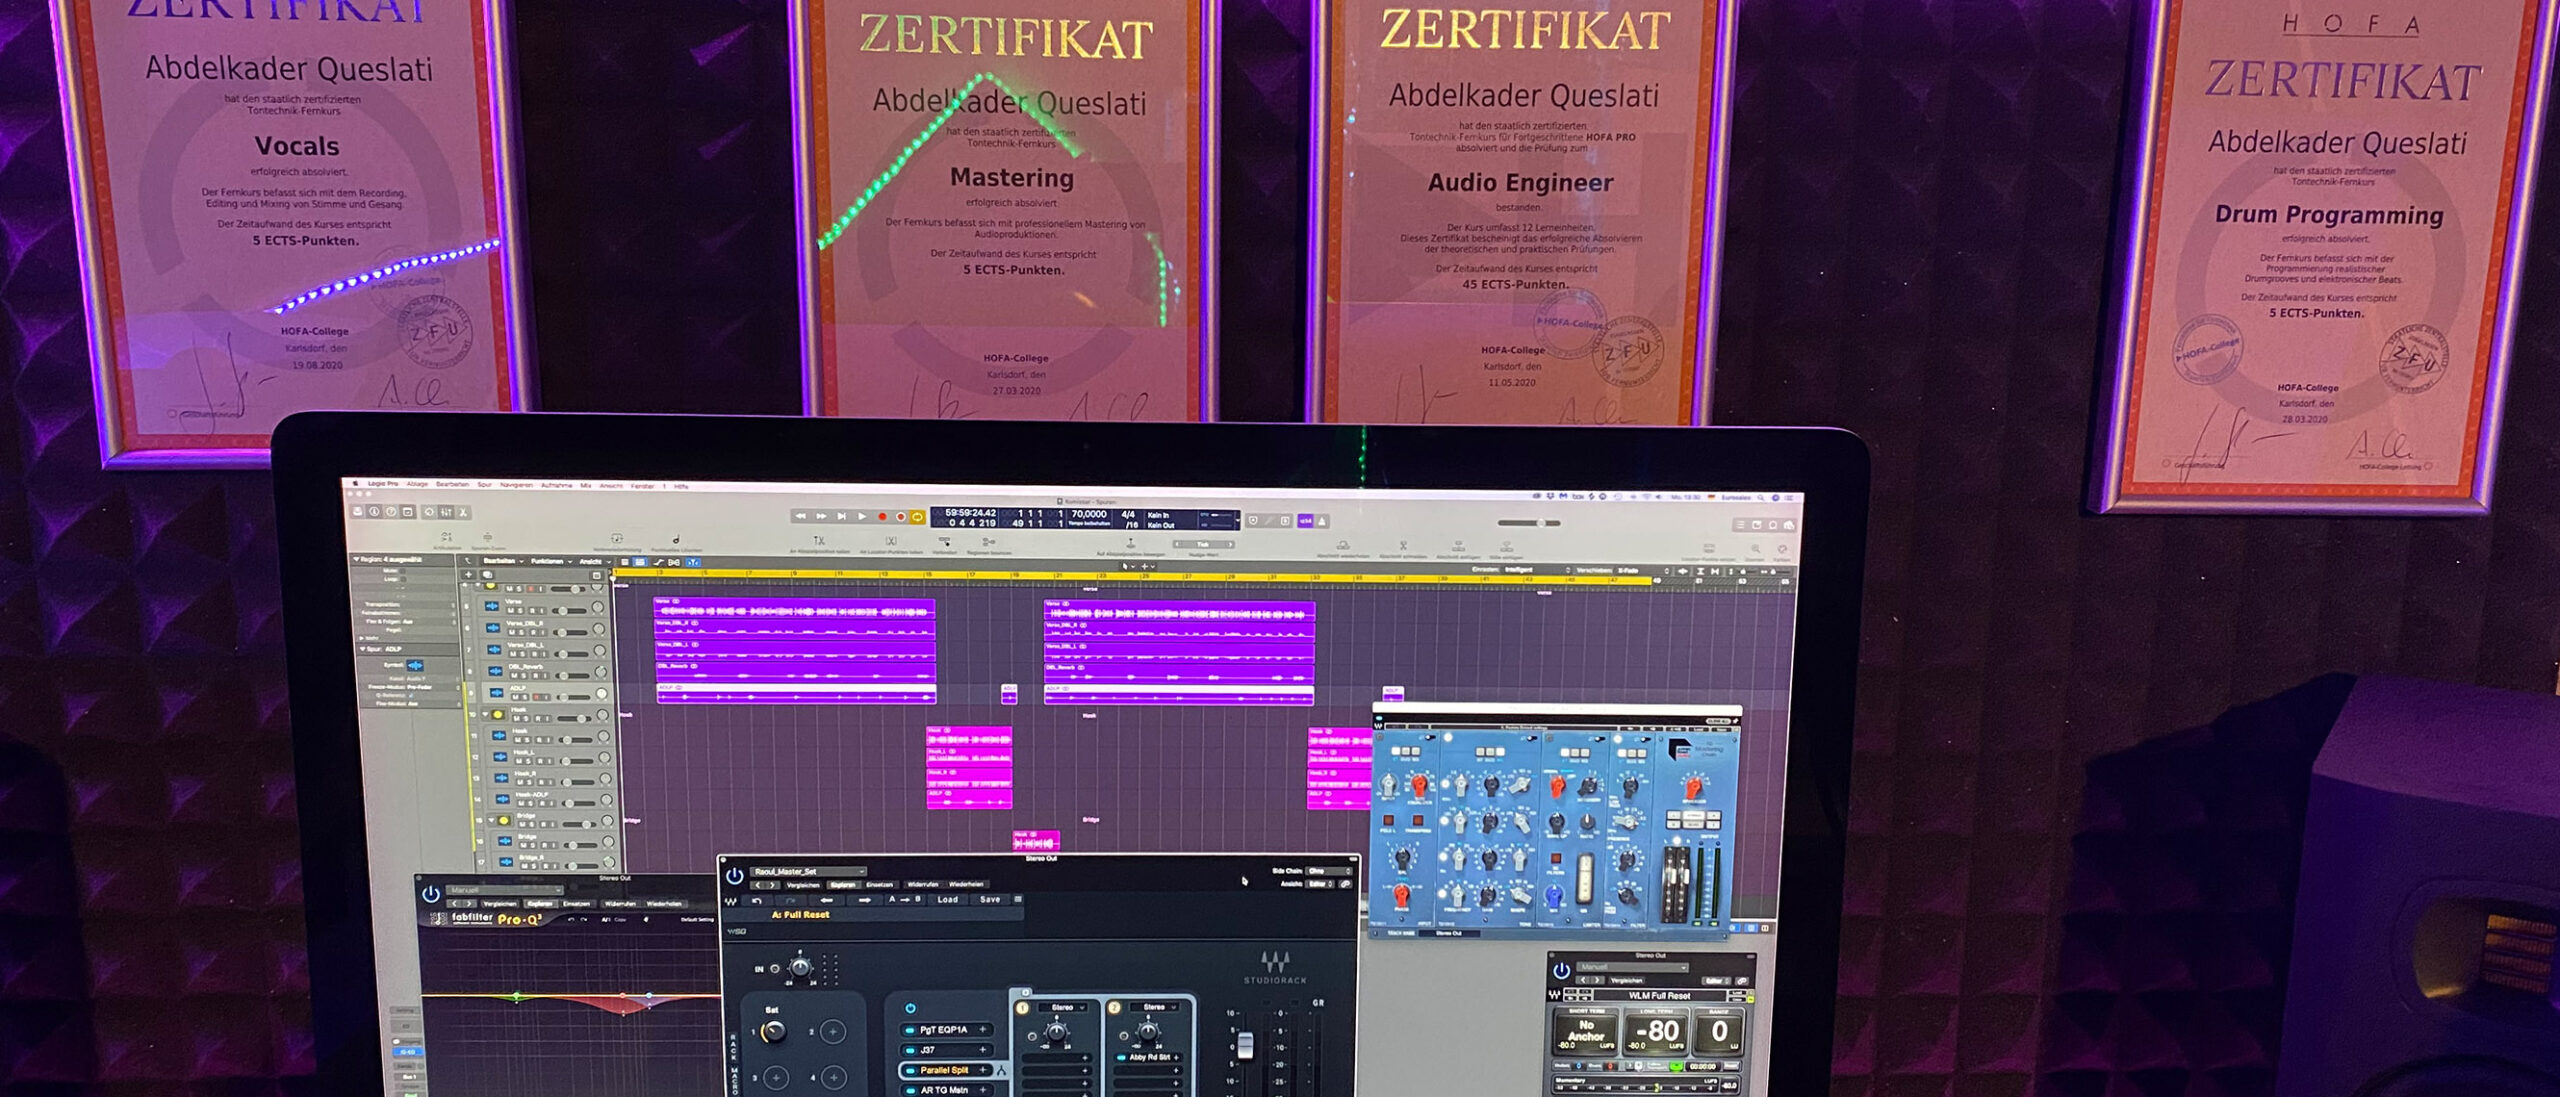 Mixing and Mastering Engineer